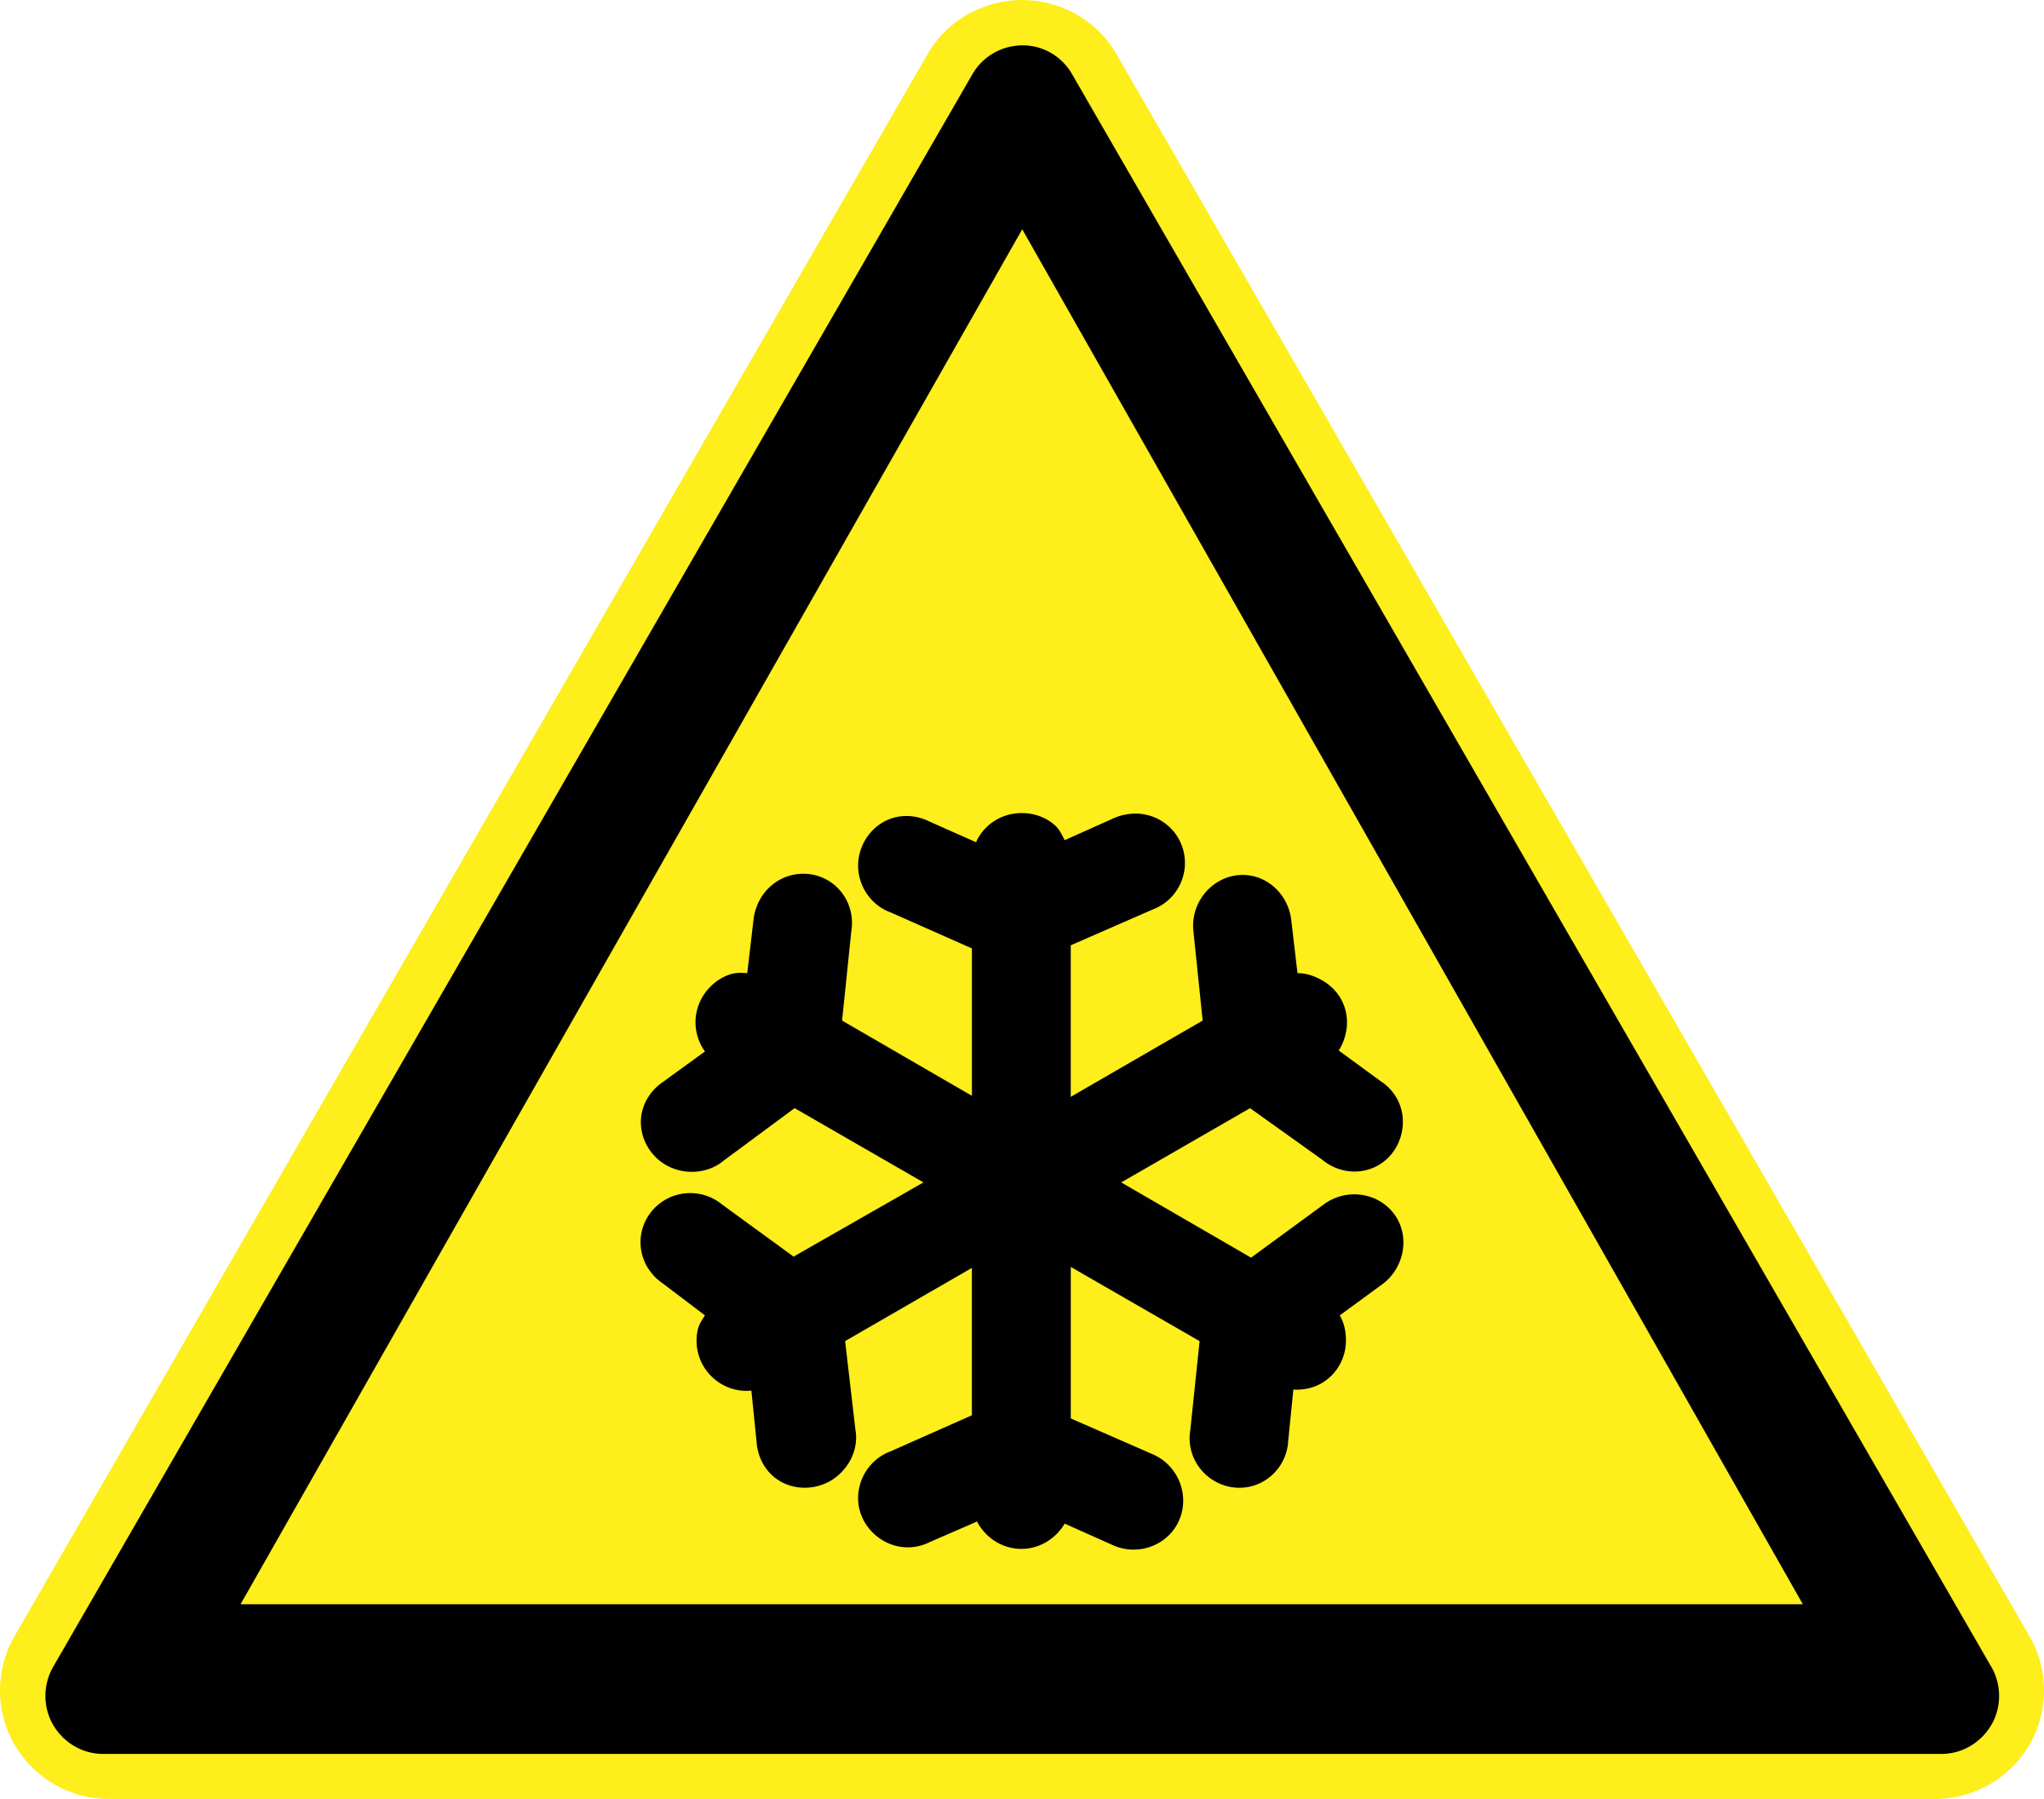 Cold Warning Sign by h0us3s